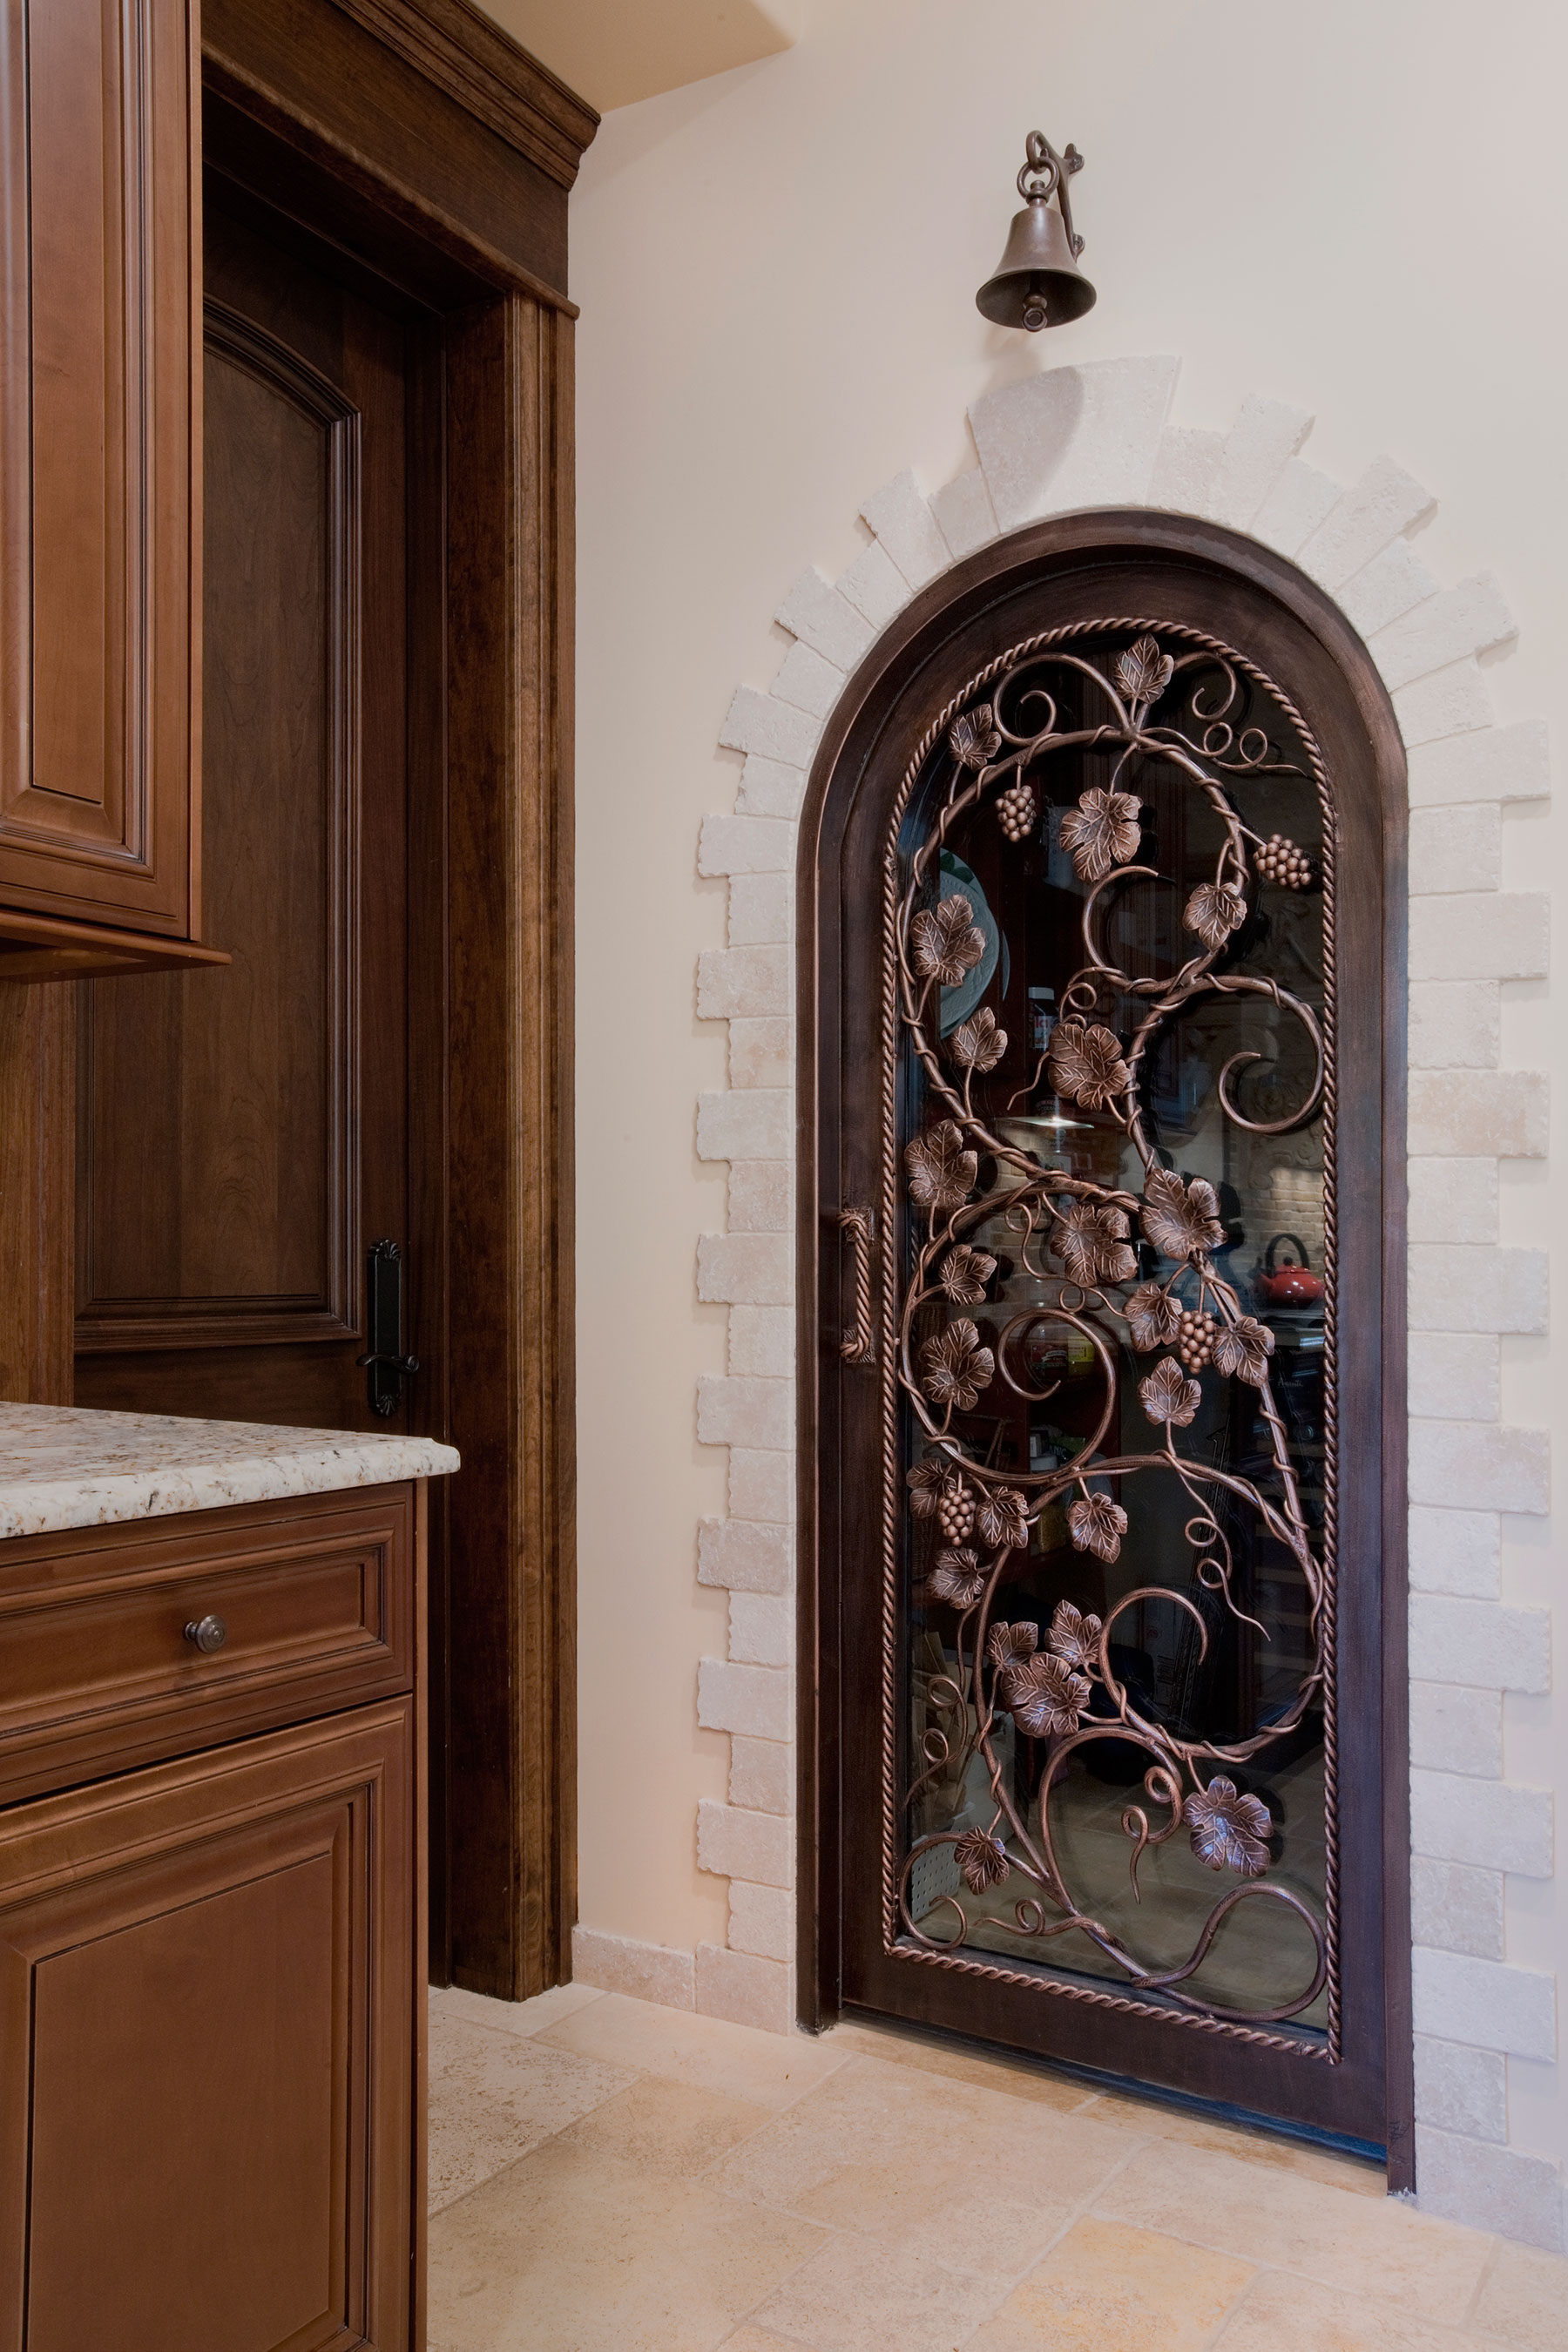 Wine Cellar Winecellar Door Custom Wood Wrought Iron Work